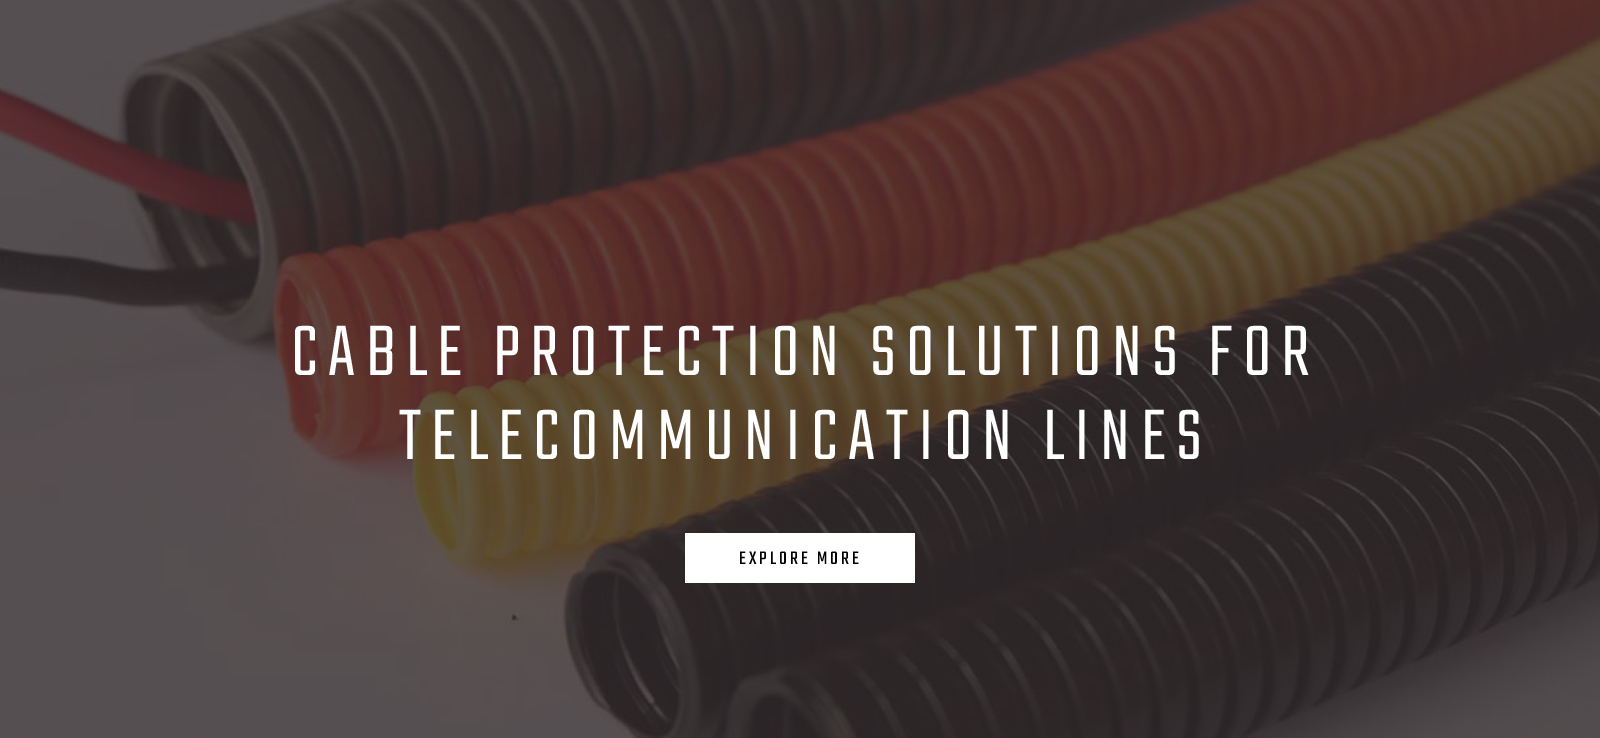 Cable Pprotection Solution for Telecommunication Lines